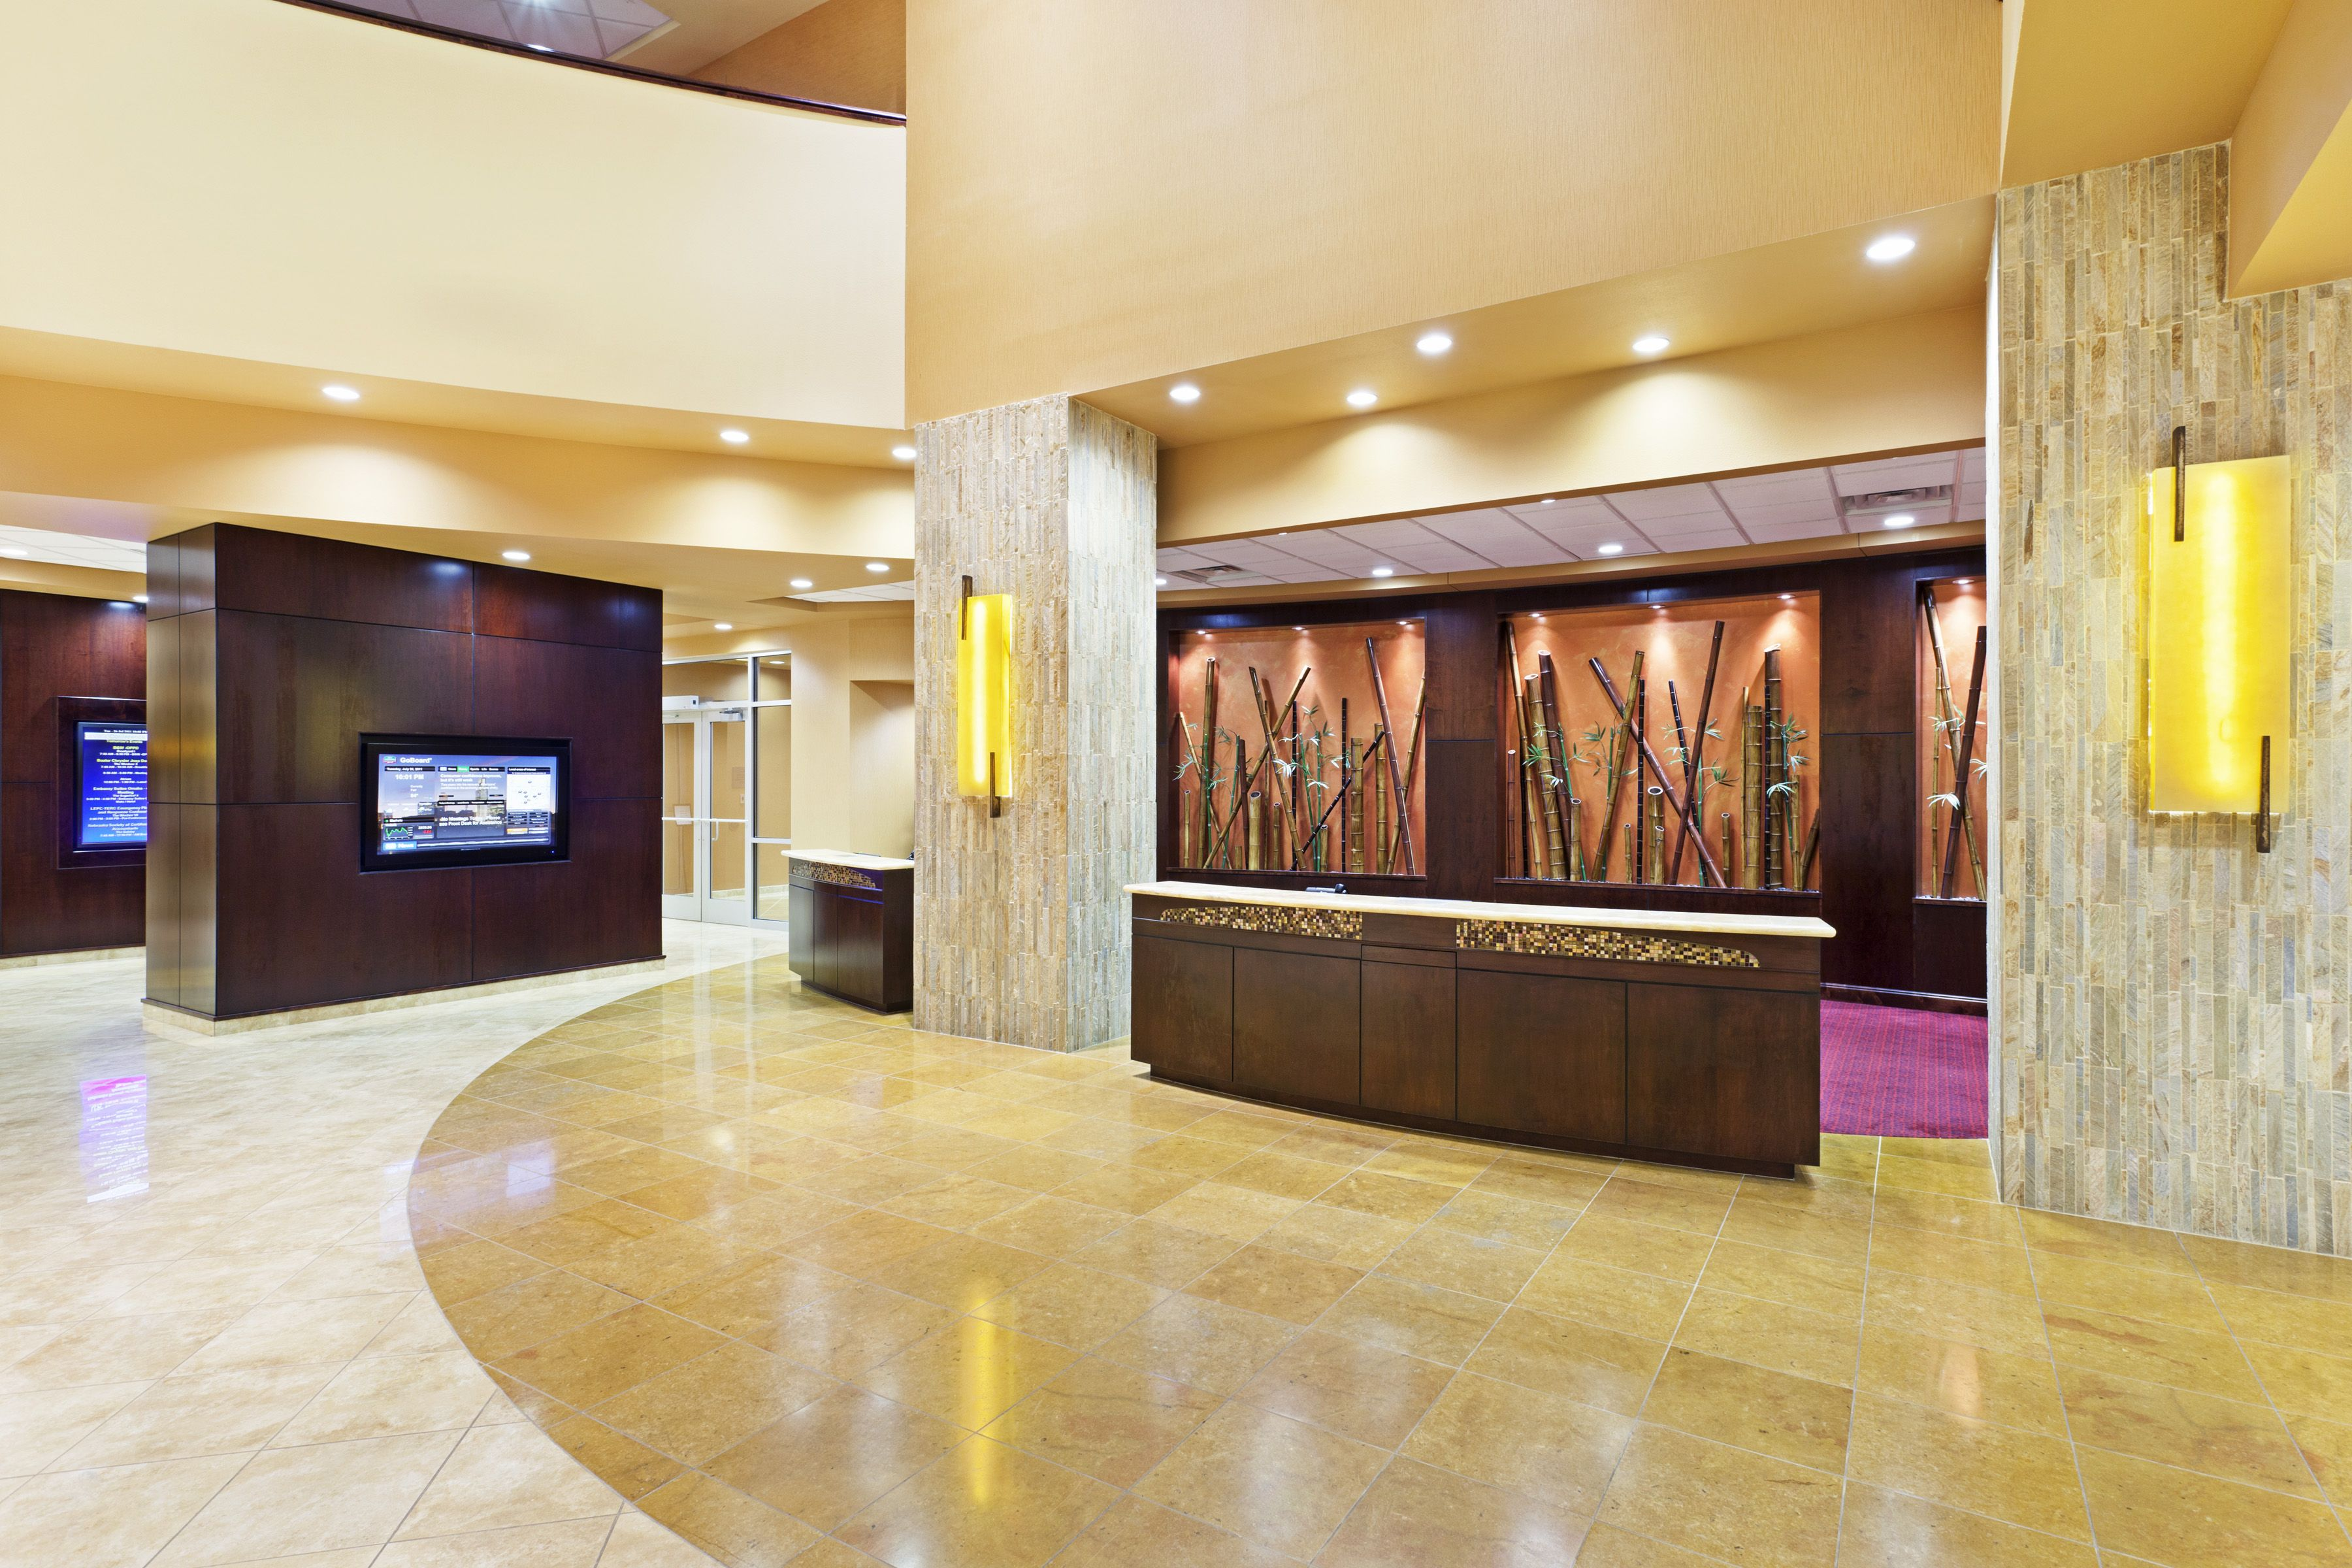 Our Open Lobby At The Courtyard By Marriott La Vista Features A